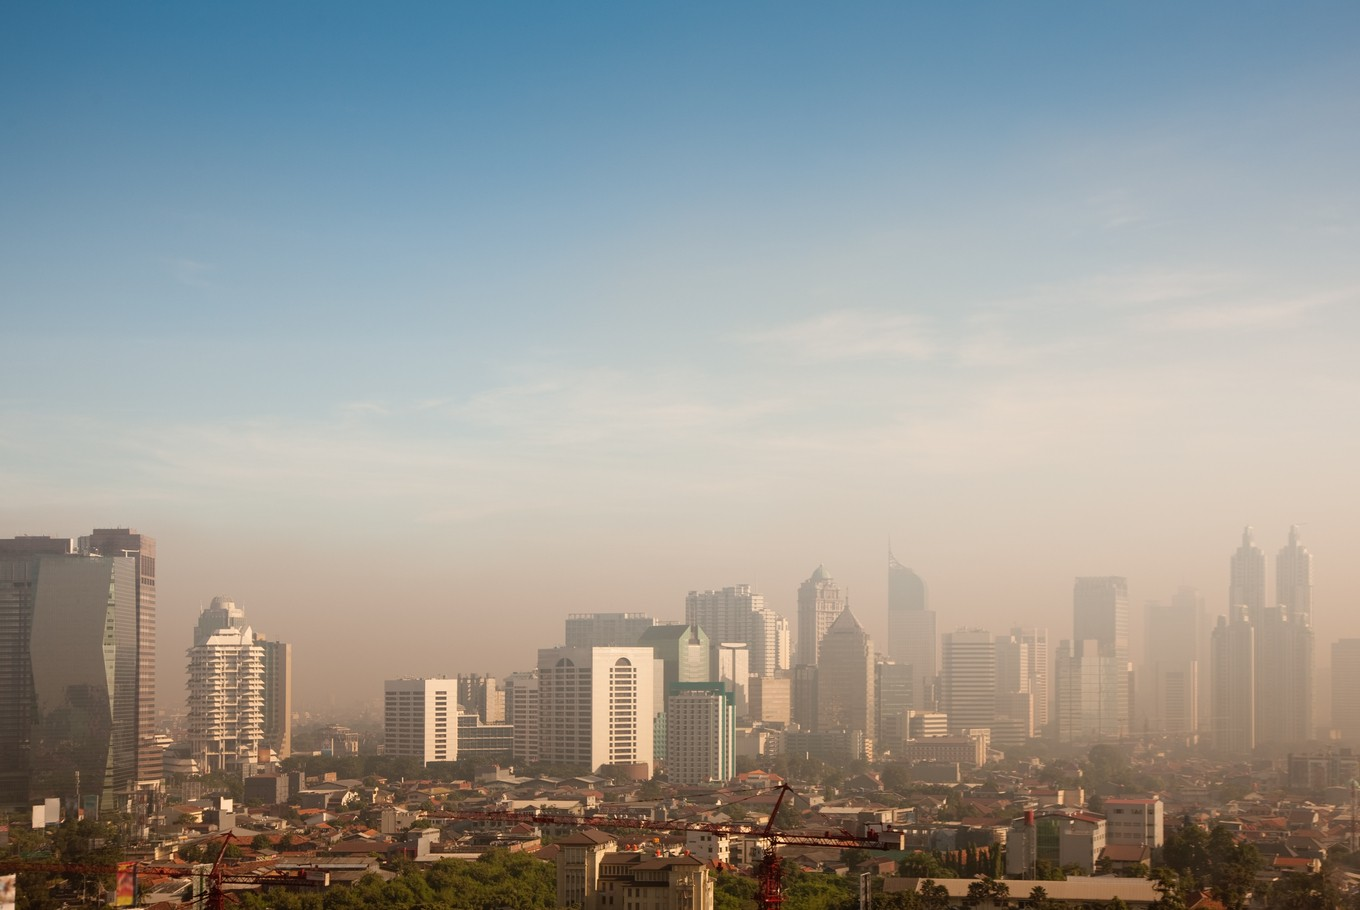 Jakarta's air pollution worse than Bangkok, better than Manila: WHO